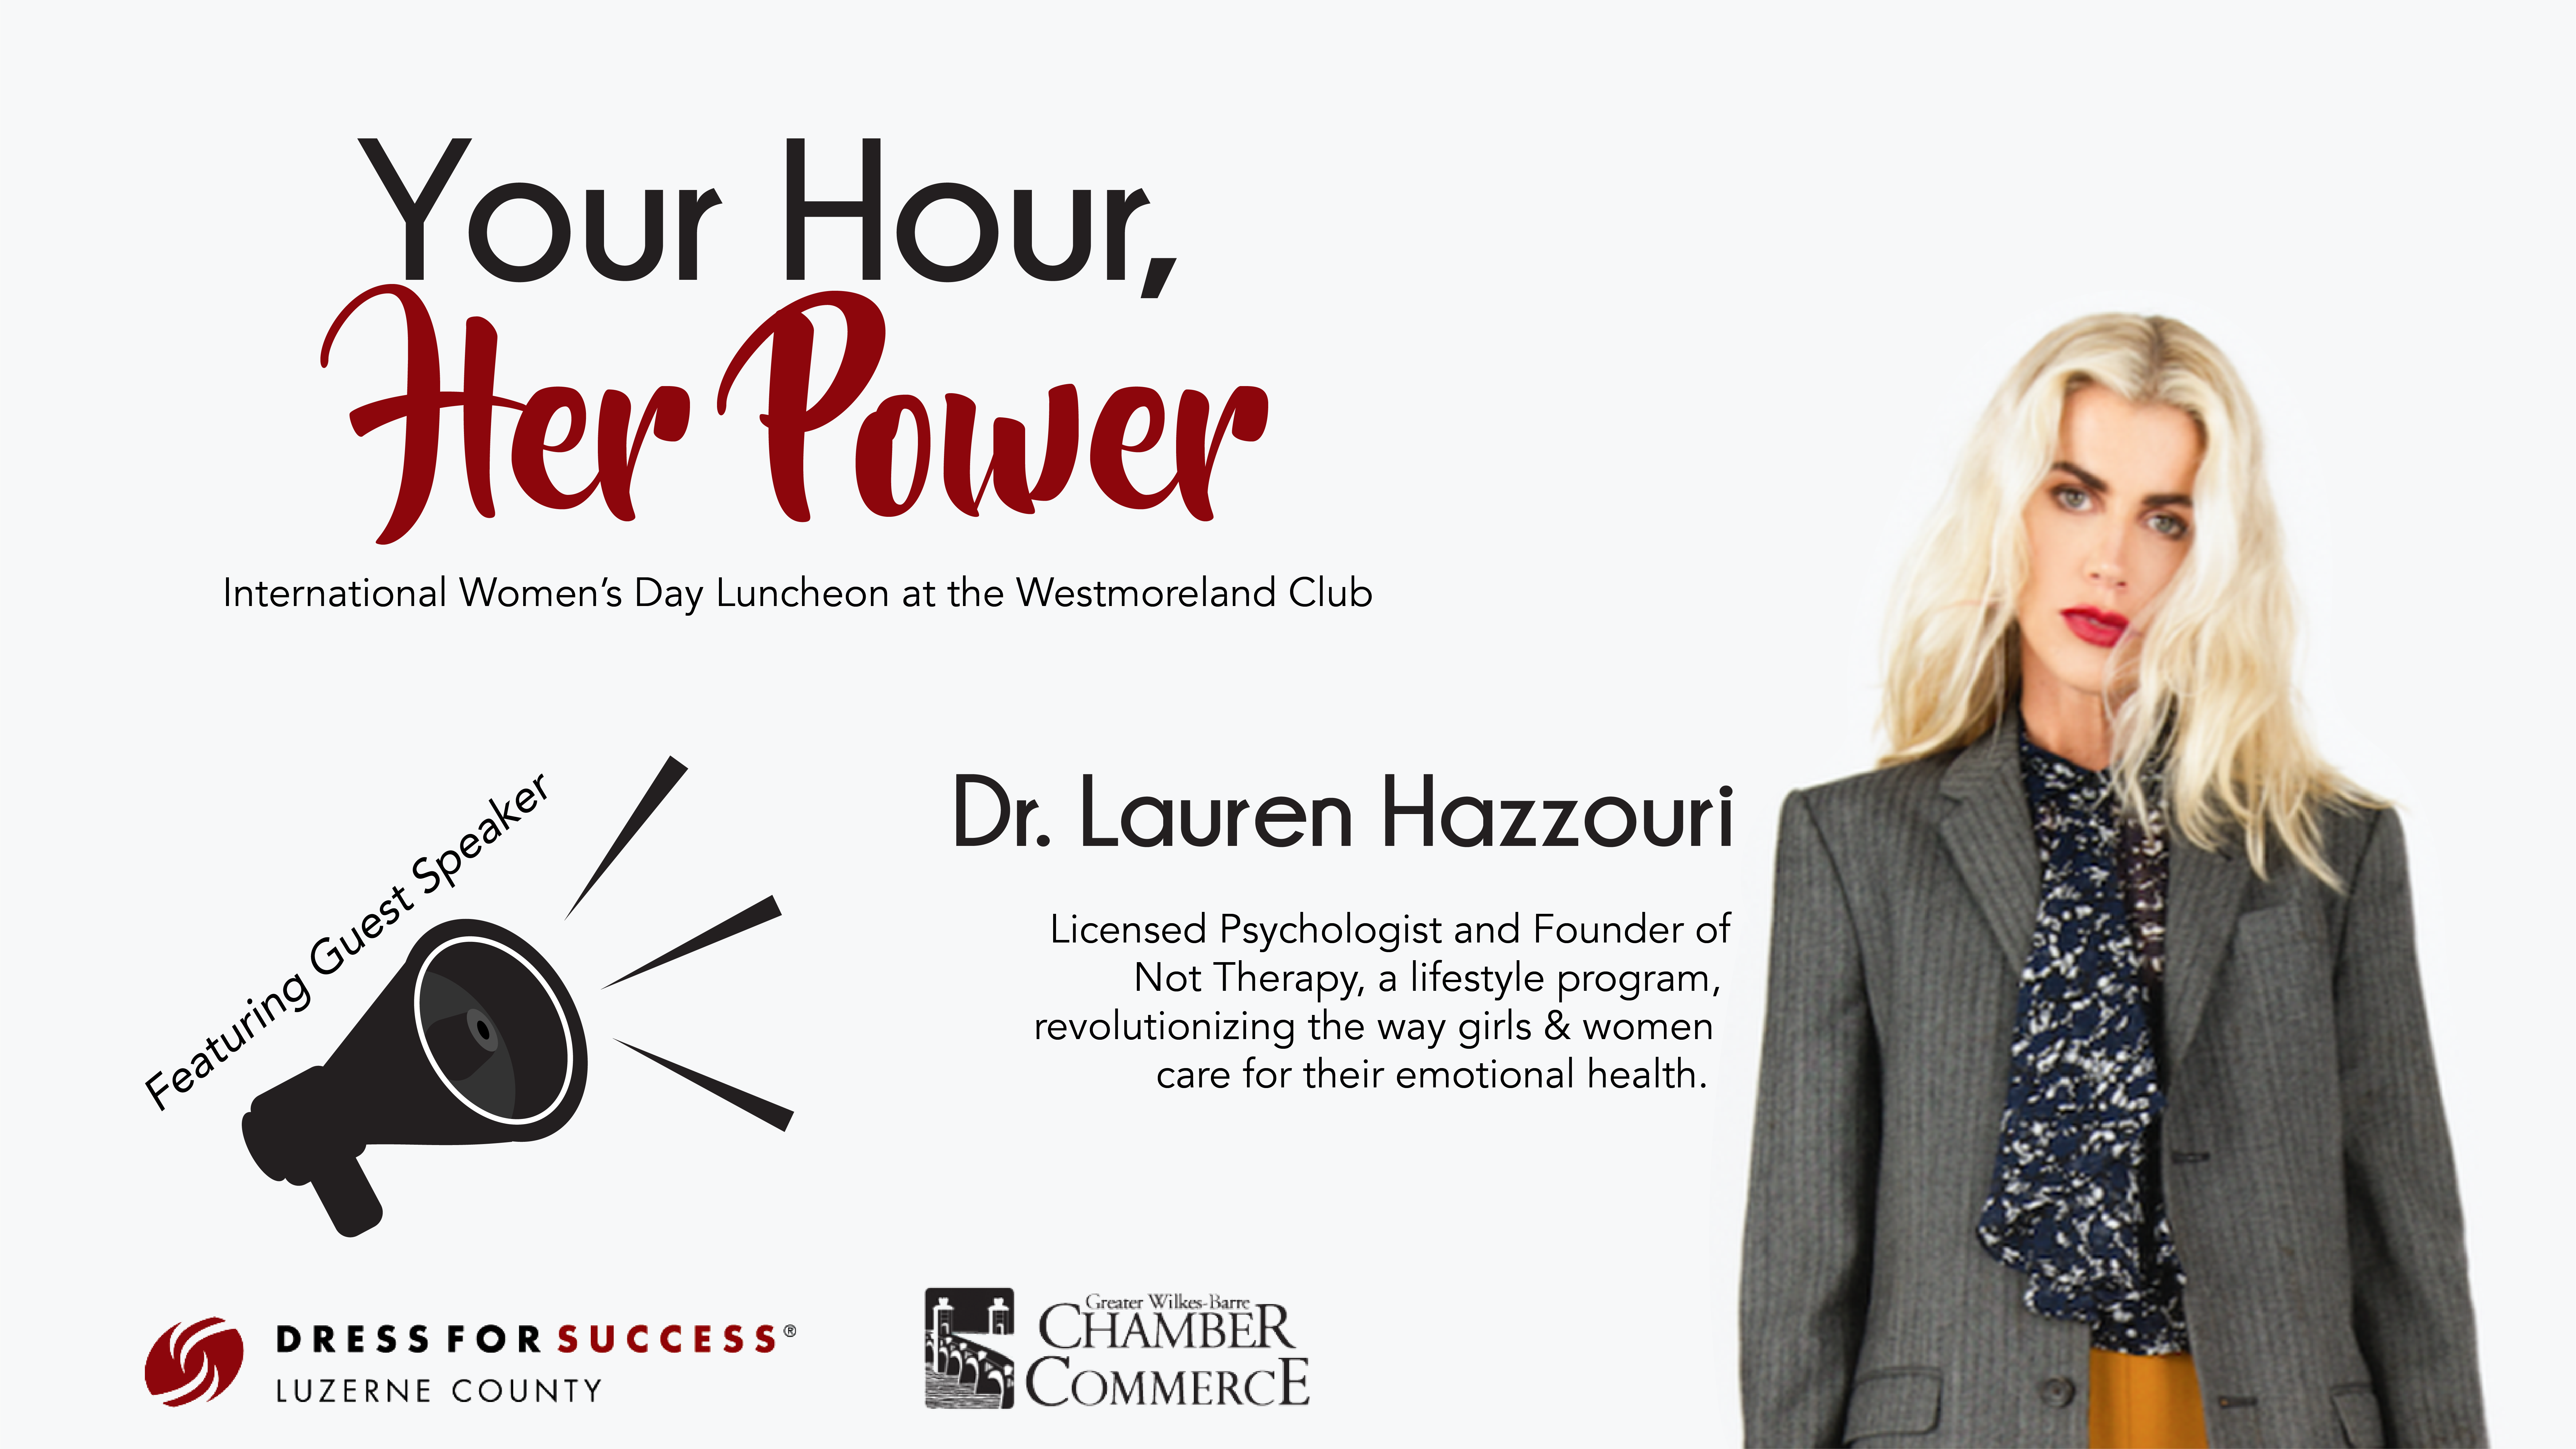 Meet the Mentorship Auction Participants for the Your Hour, Her Power Luncheon!